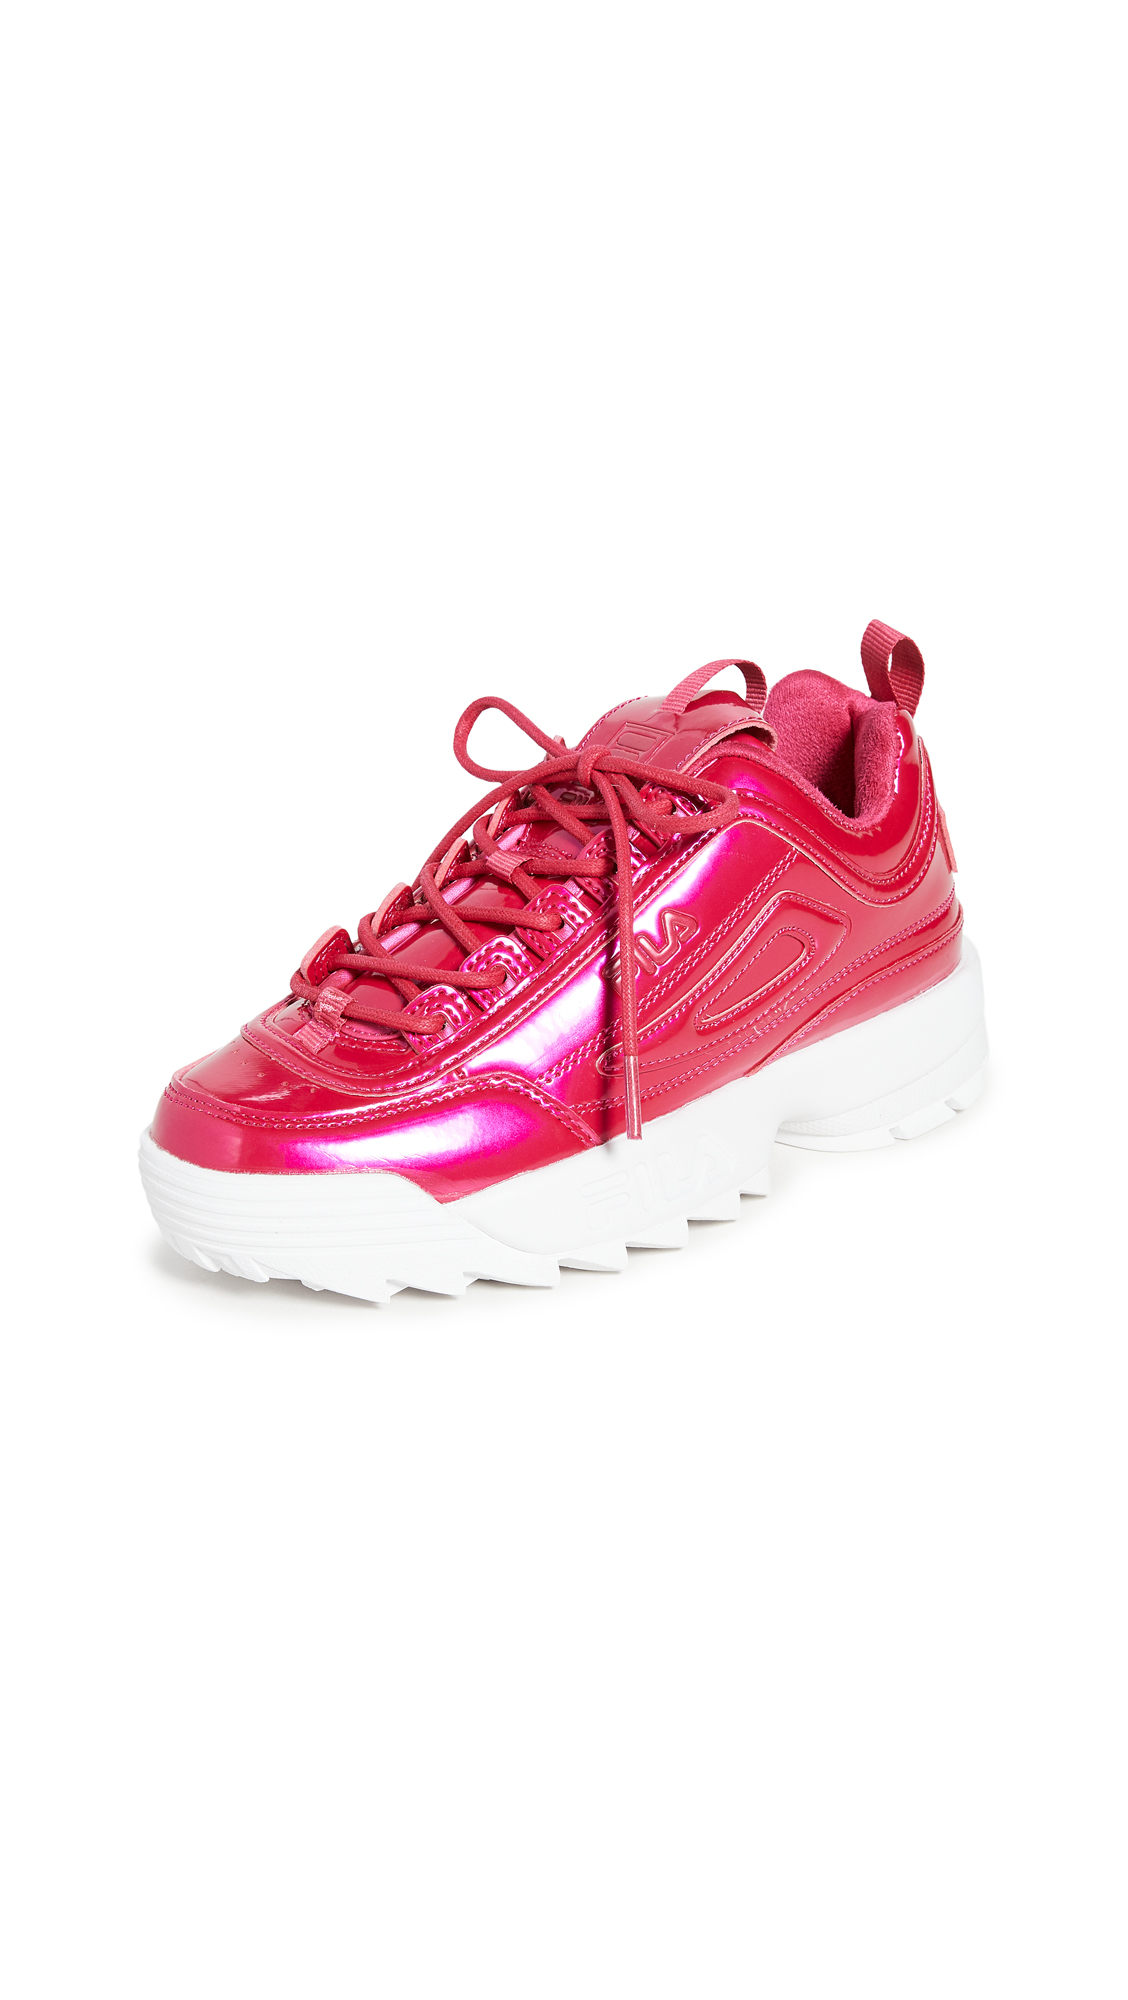 Fila Disruptor II Liquid Luster Sneakers - 50% Off Sale